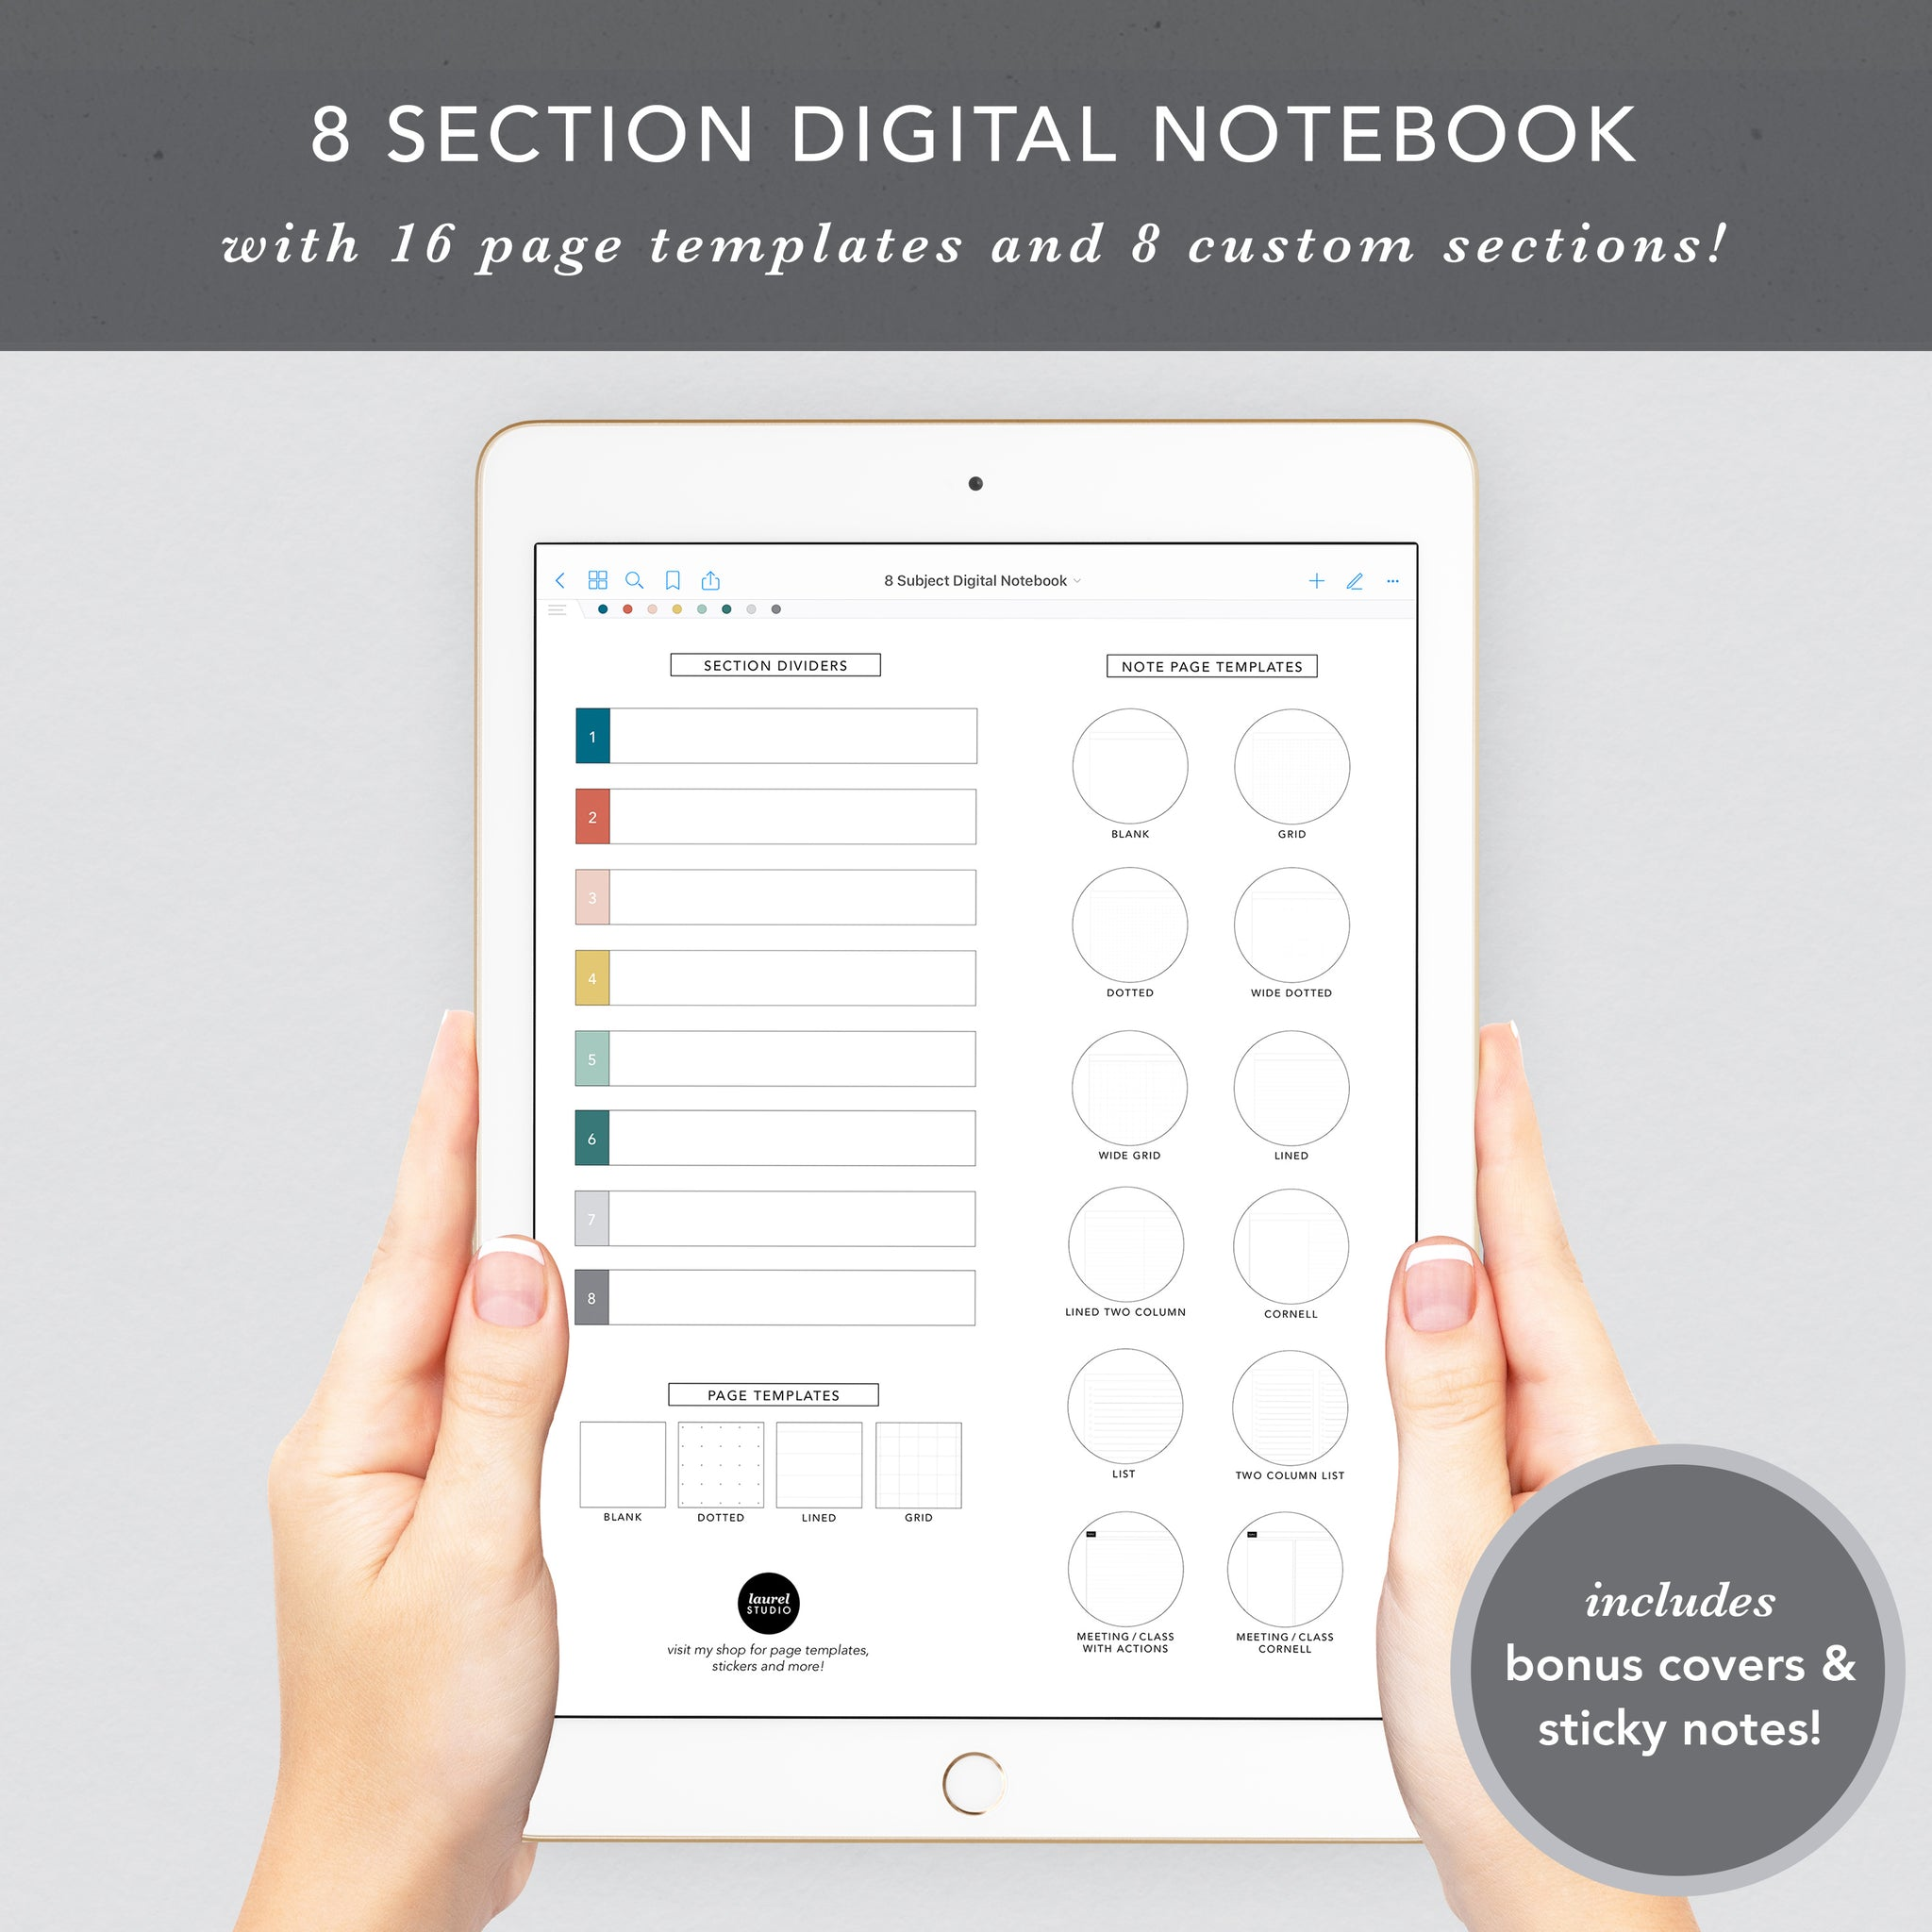 8 Section Digital Notebook